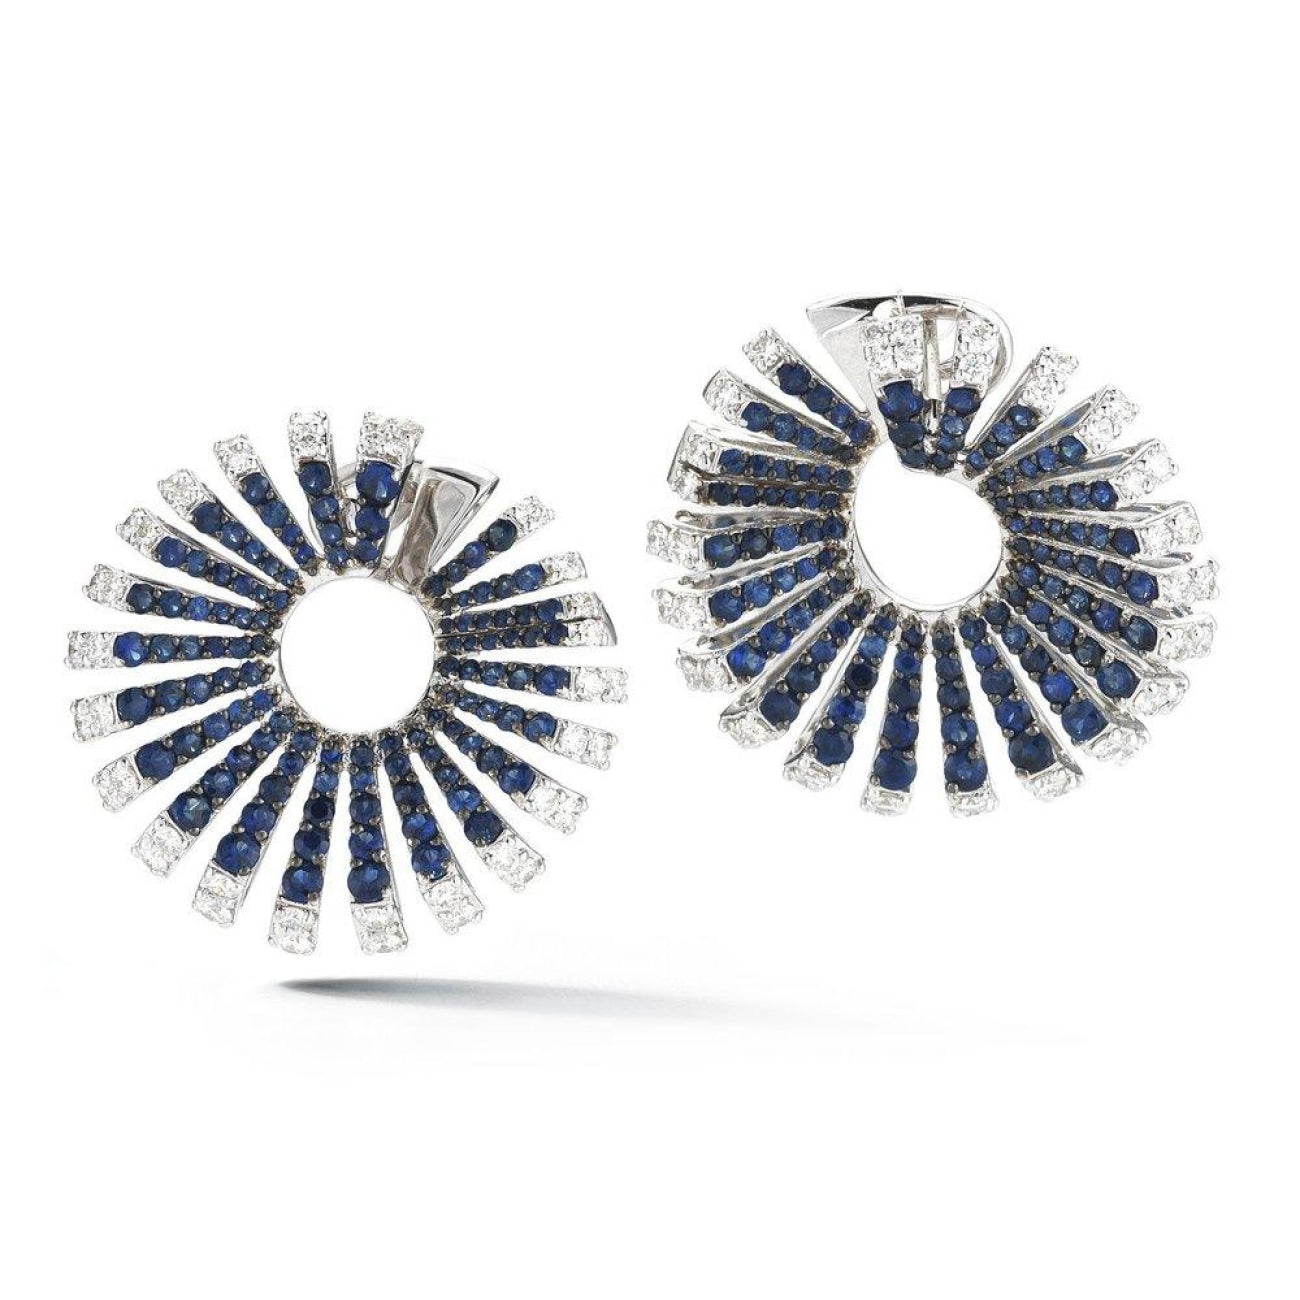 Miseno Jewelry - Ventaglio Earrings in white gold | Manfredi Jewels